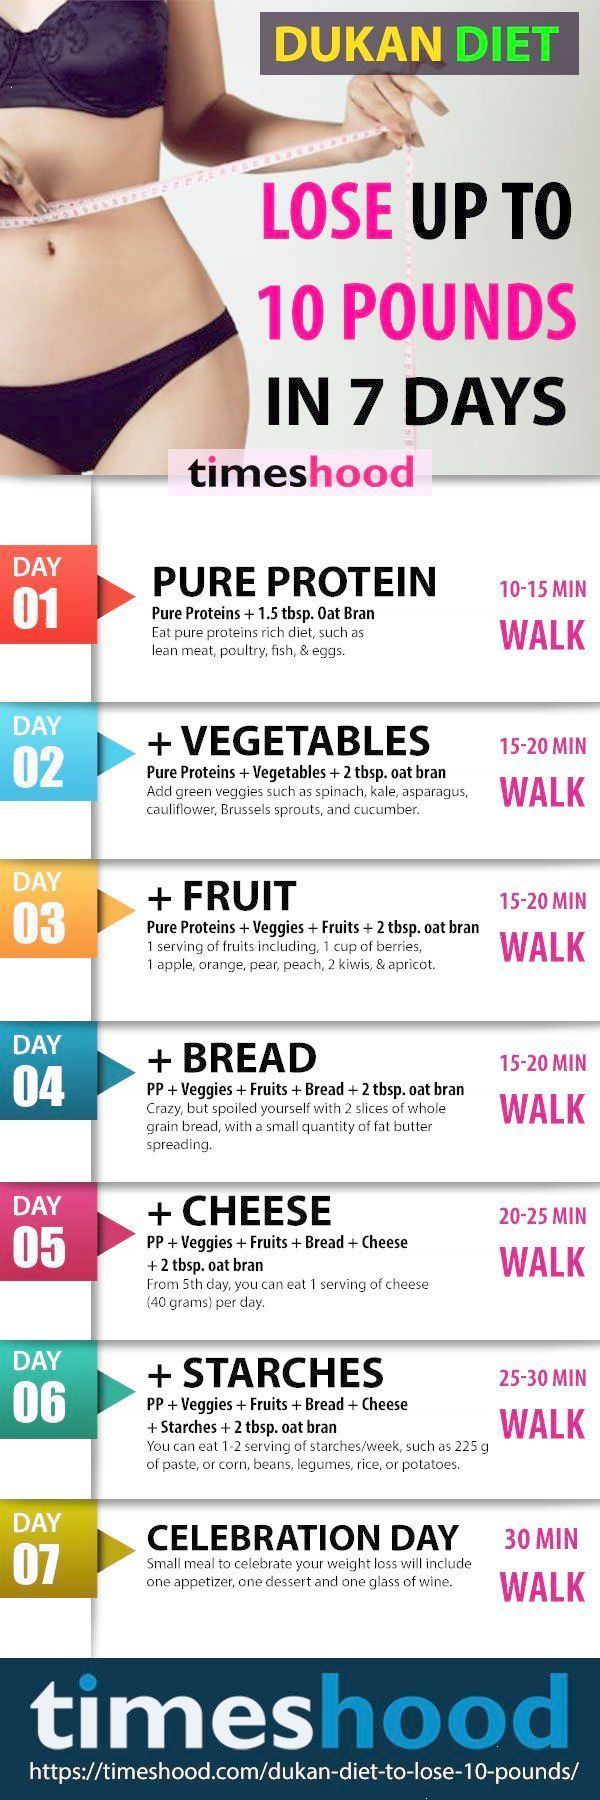 5 day weight loss diet meal plan | bmi formula